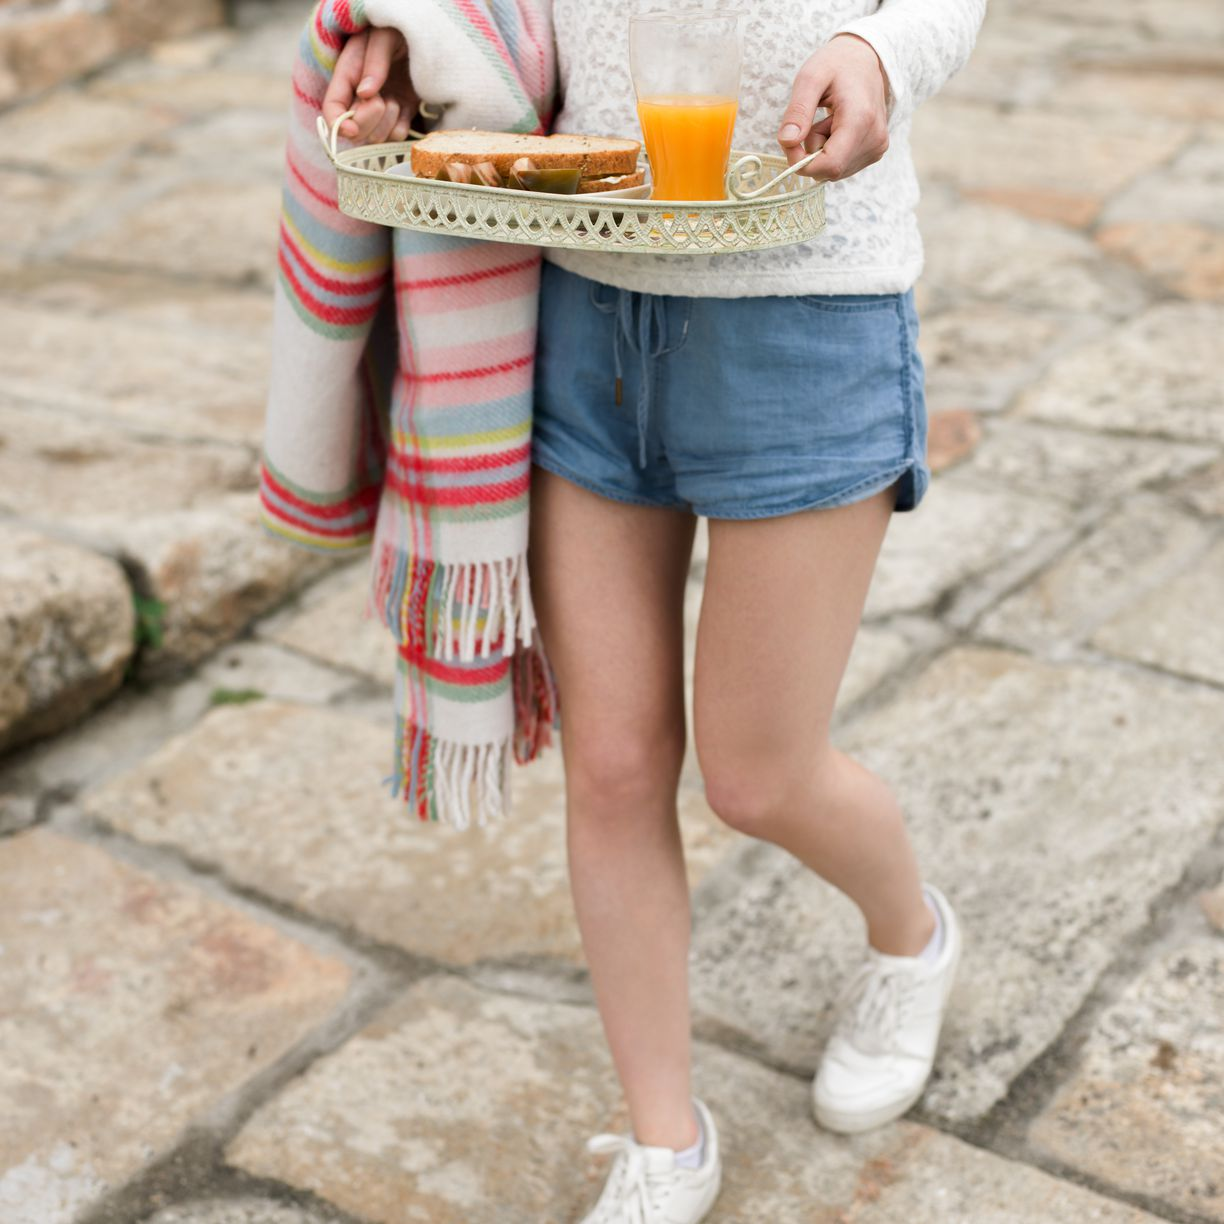 Girl with throw blanket and tray of food